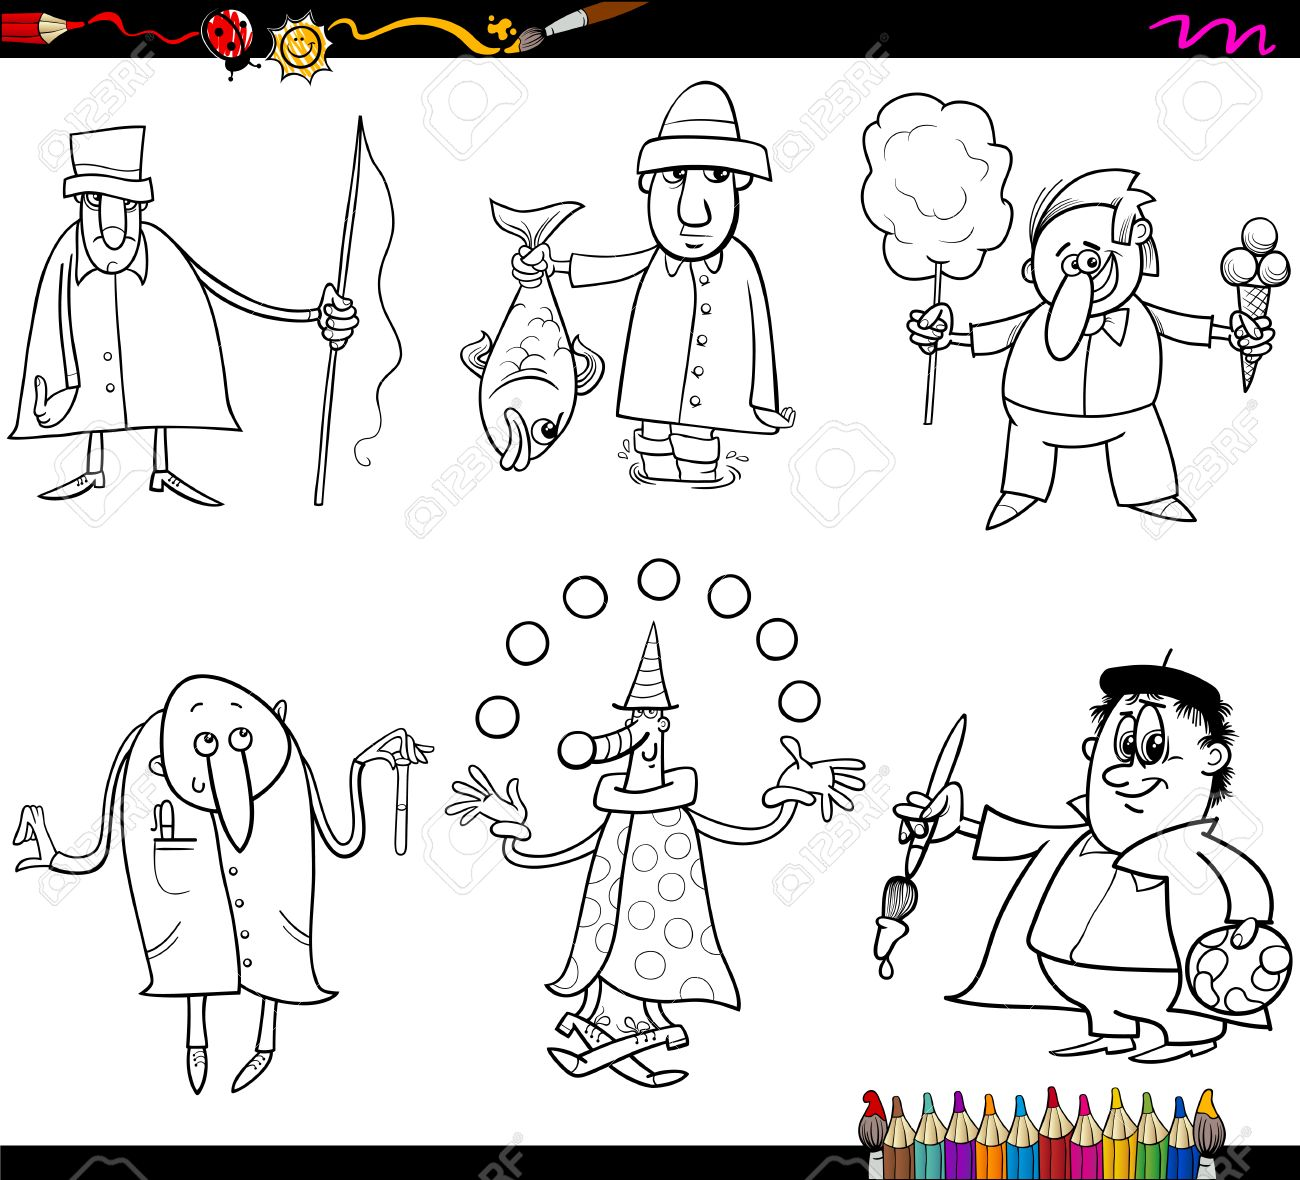 Coloring Book Cartoon Illustration Of Funny Professional People ...